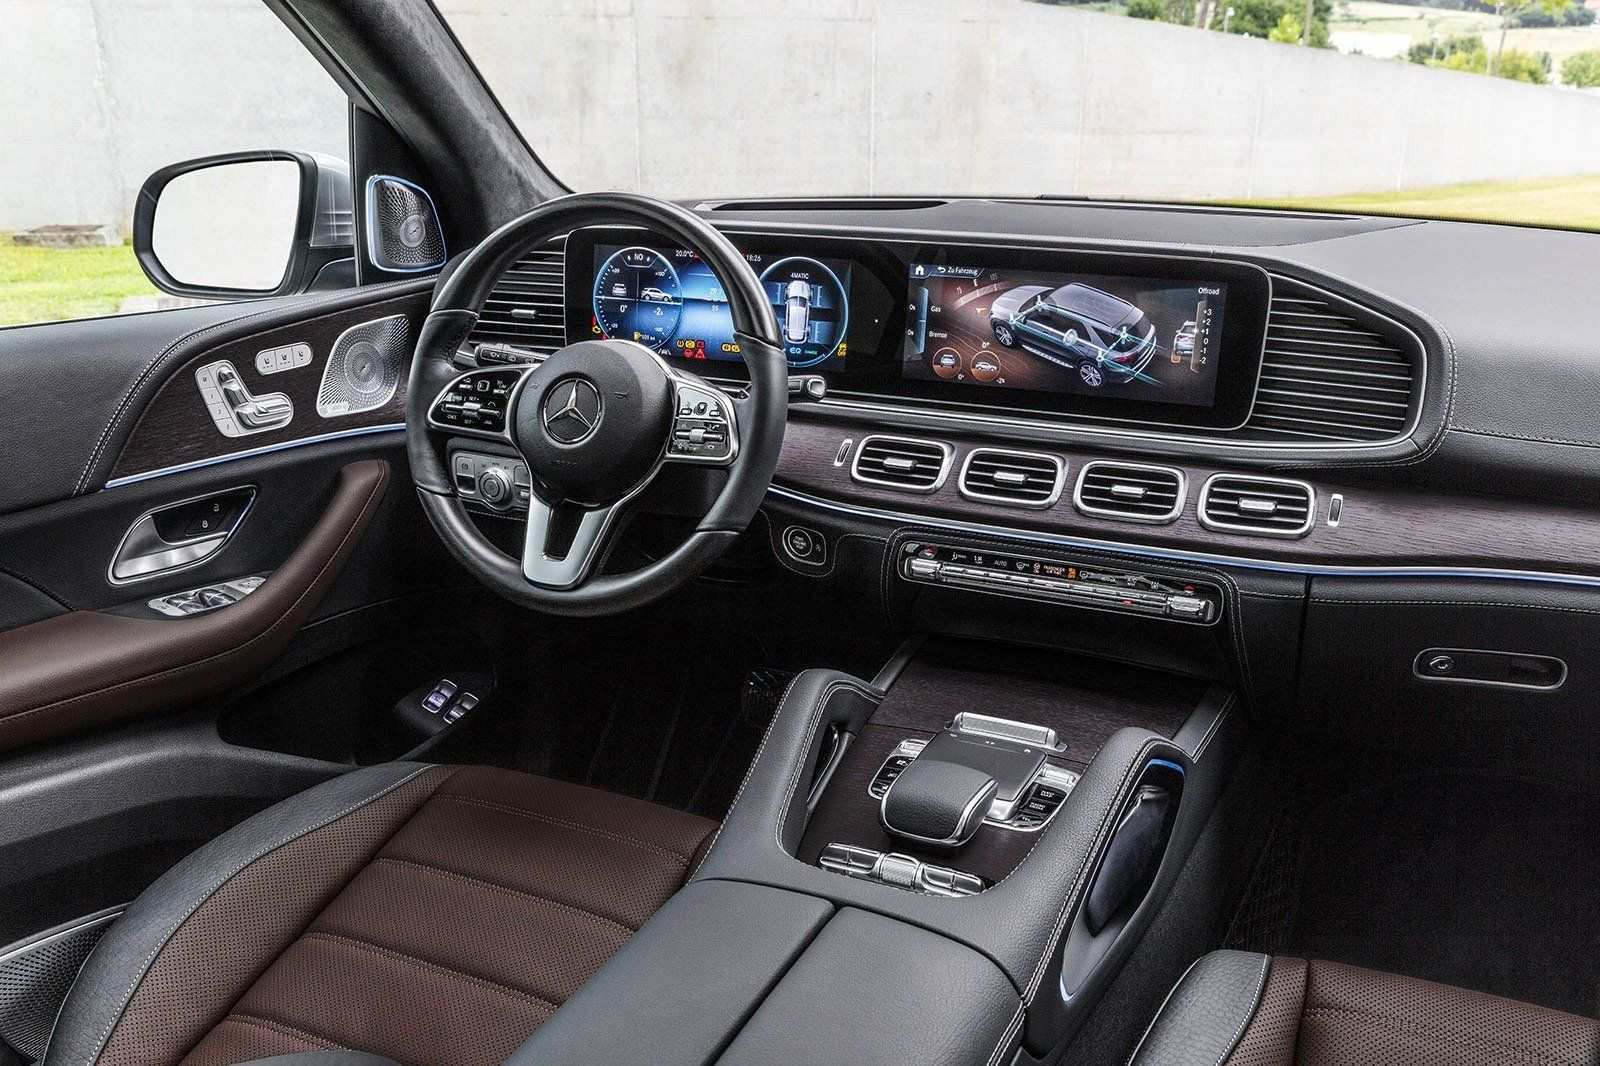 55 Best Review Mercedes 2020 Precio Interior for Mercedes 2020 Precio